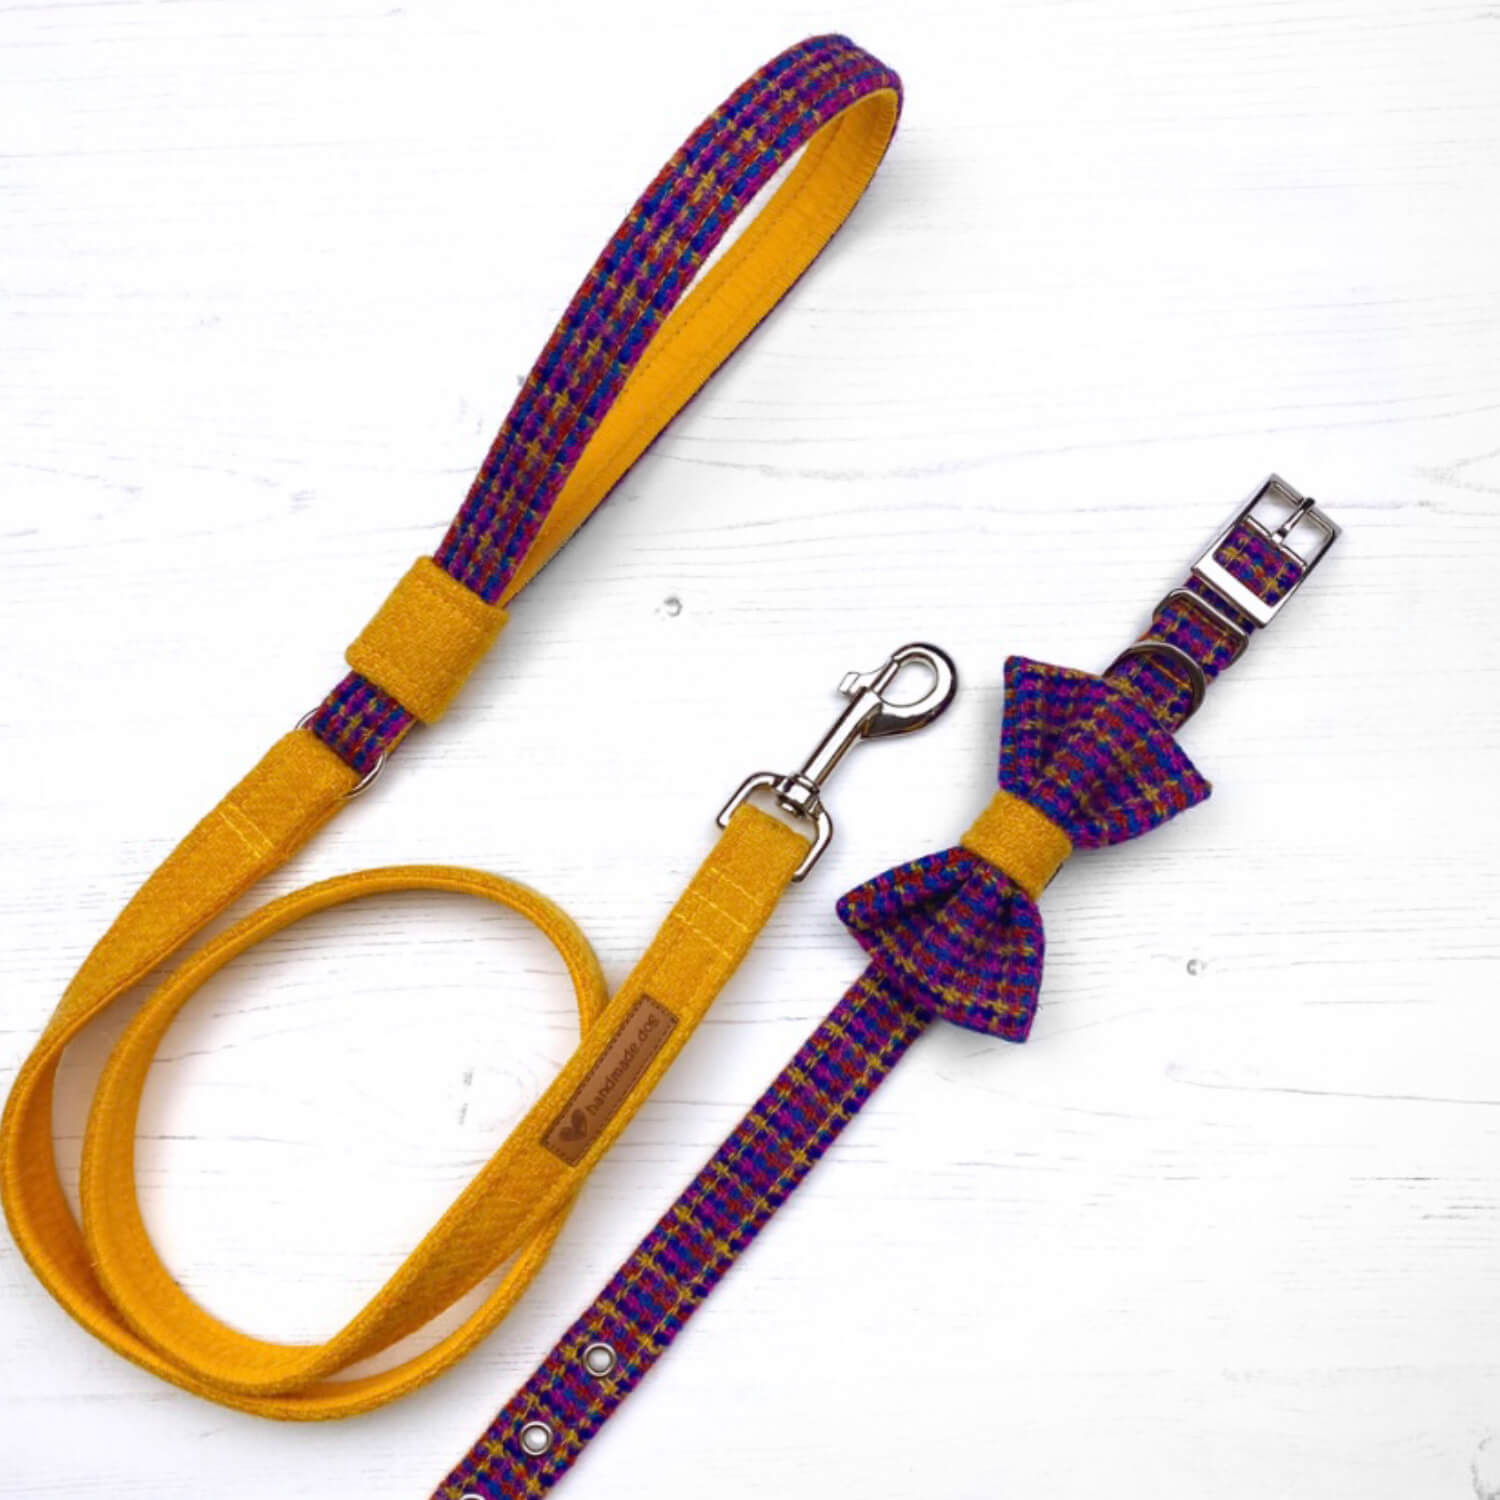 Handmade 'Harris Tweed' Limited Edition Istanbul Dog collar, lead and dickie bow set